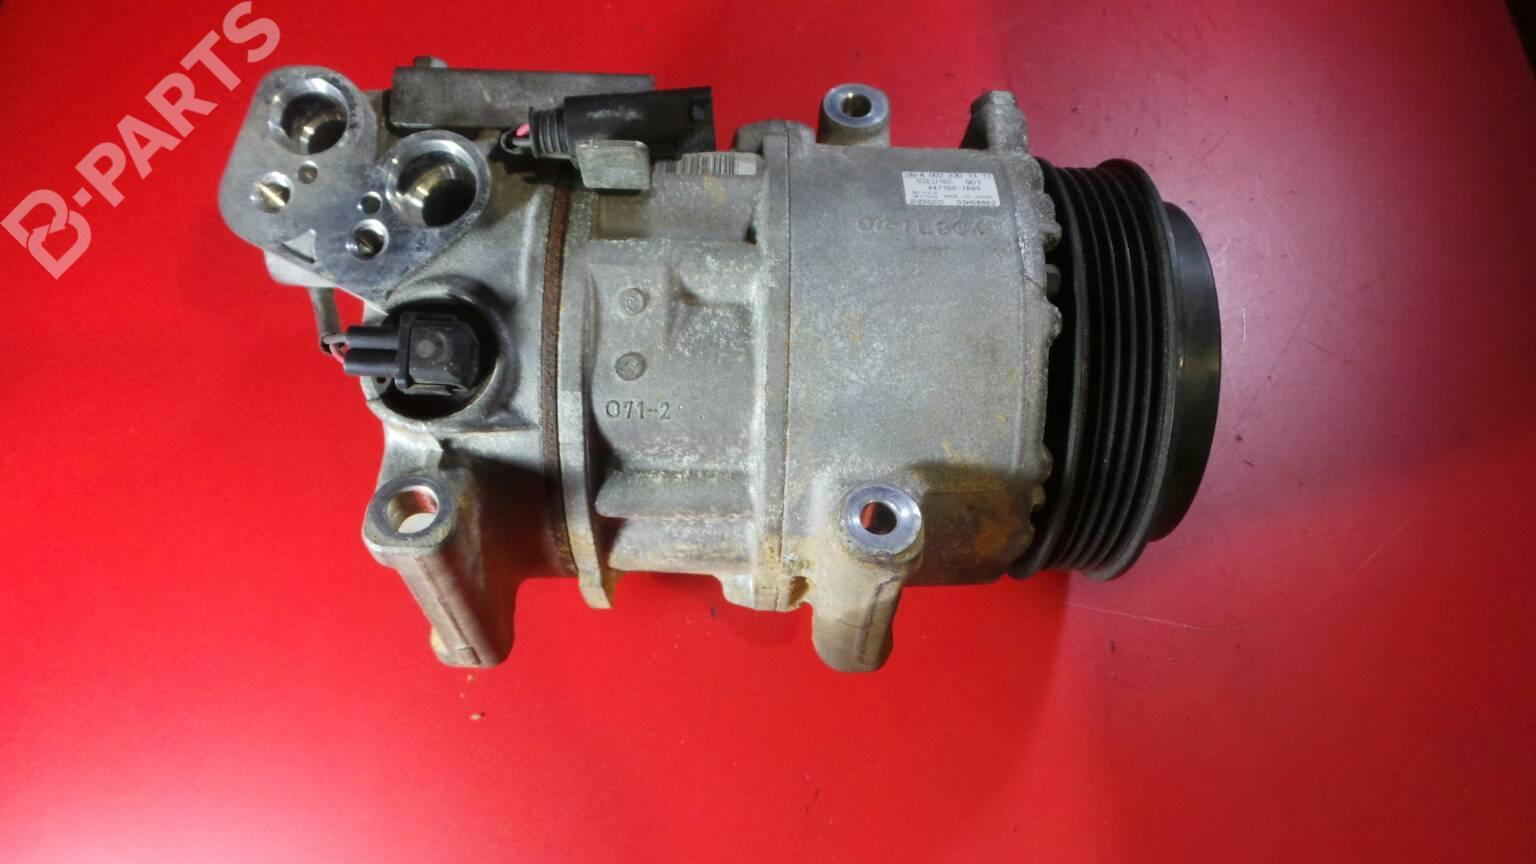 Ac Compressor Mercedes Benz A Class W169 150 169031 169331 Kompresor Mercy A150 Denso 002 230 13 11